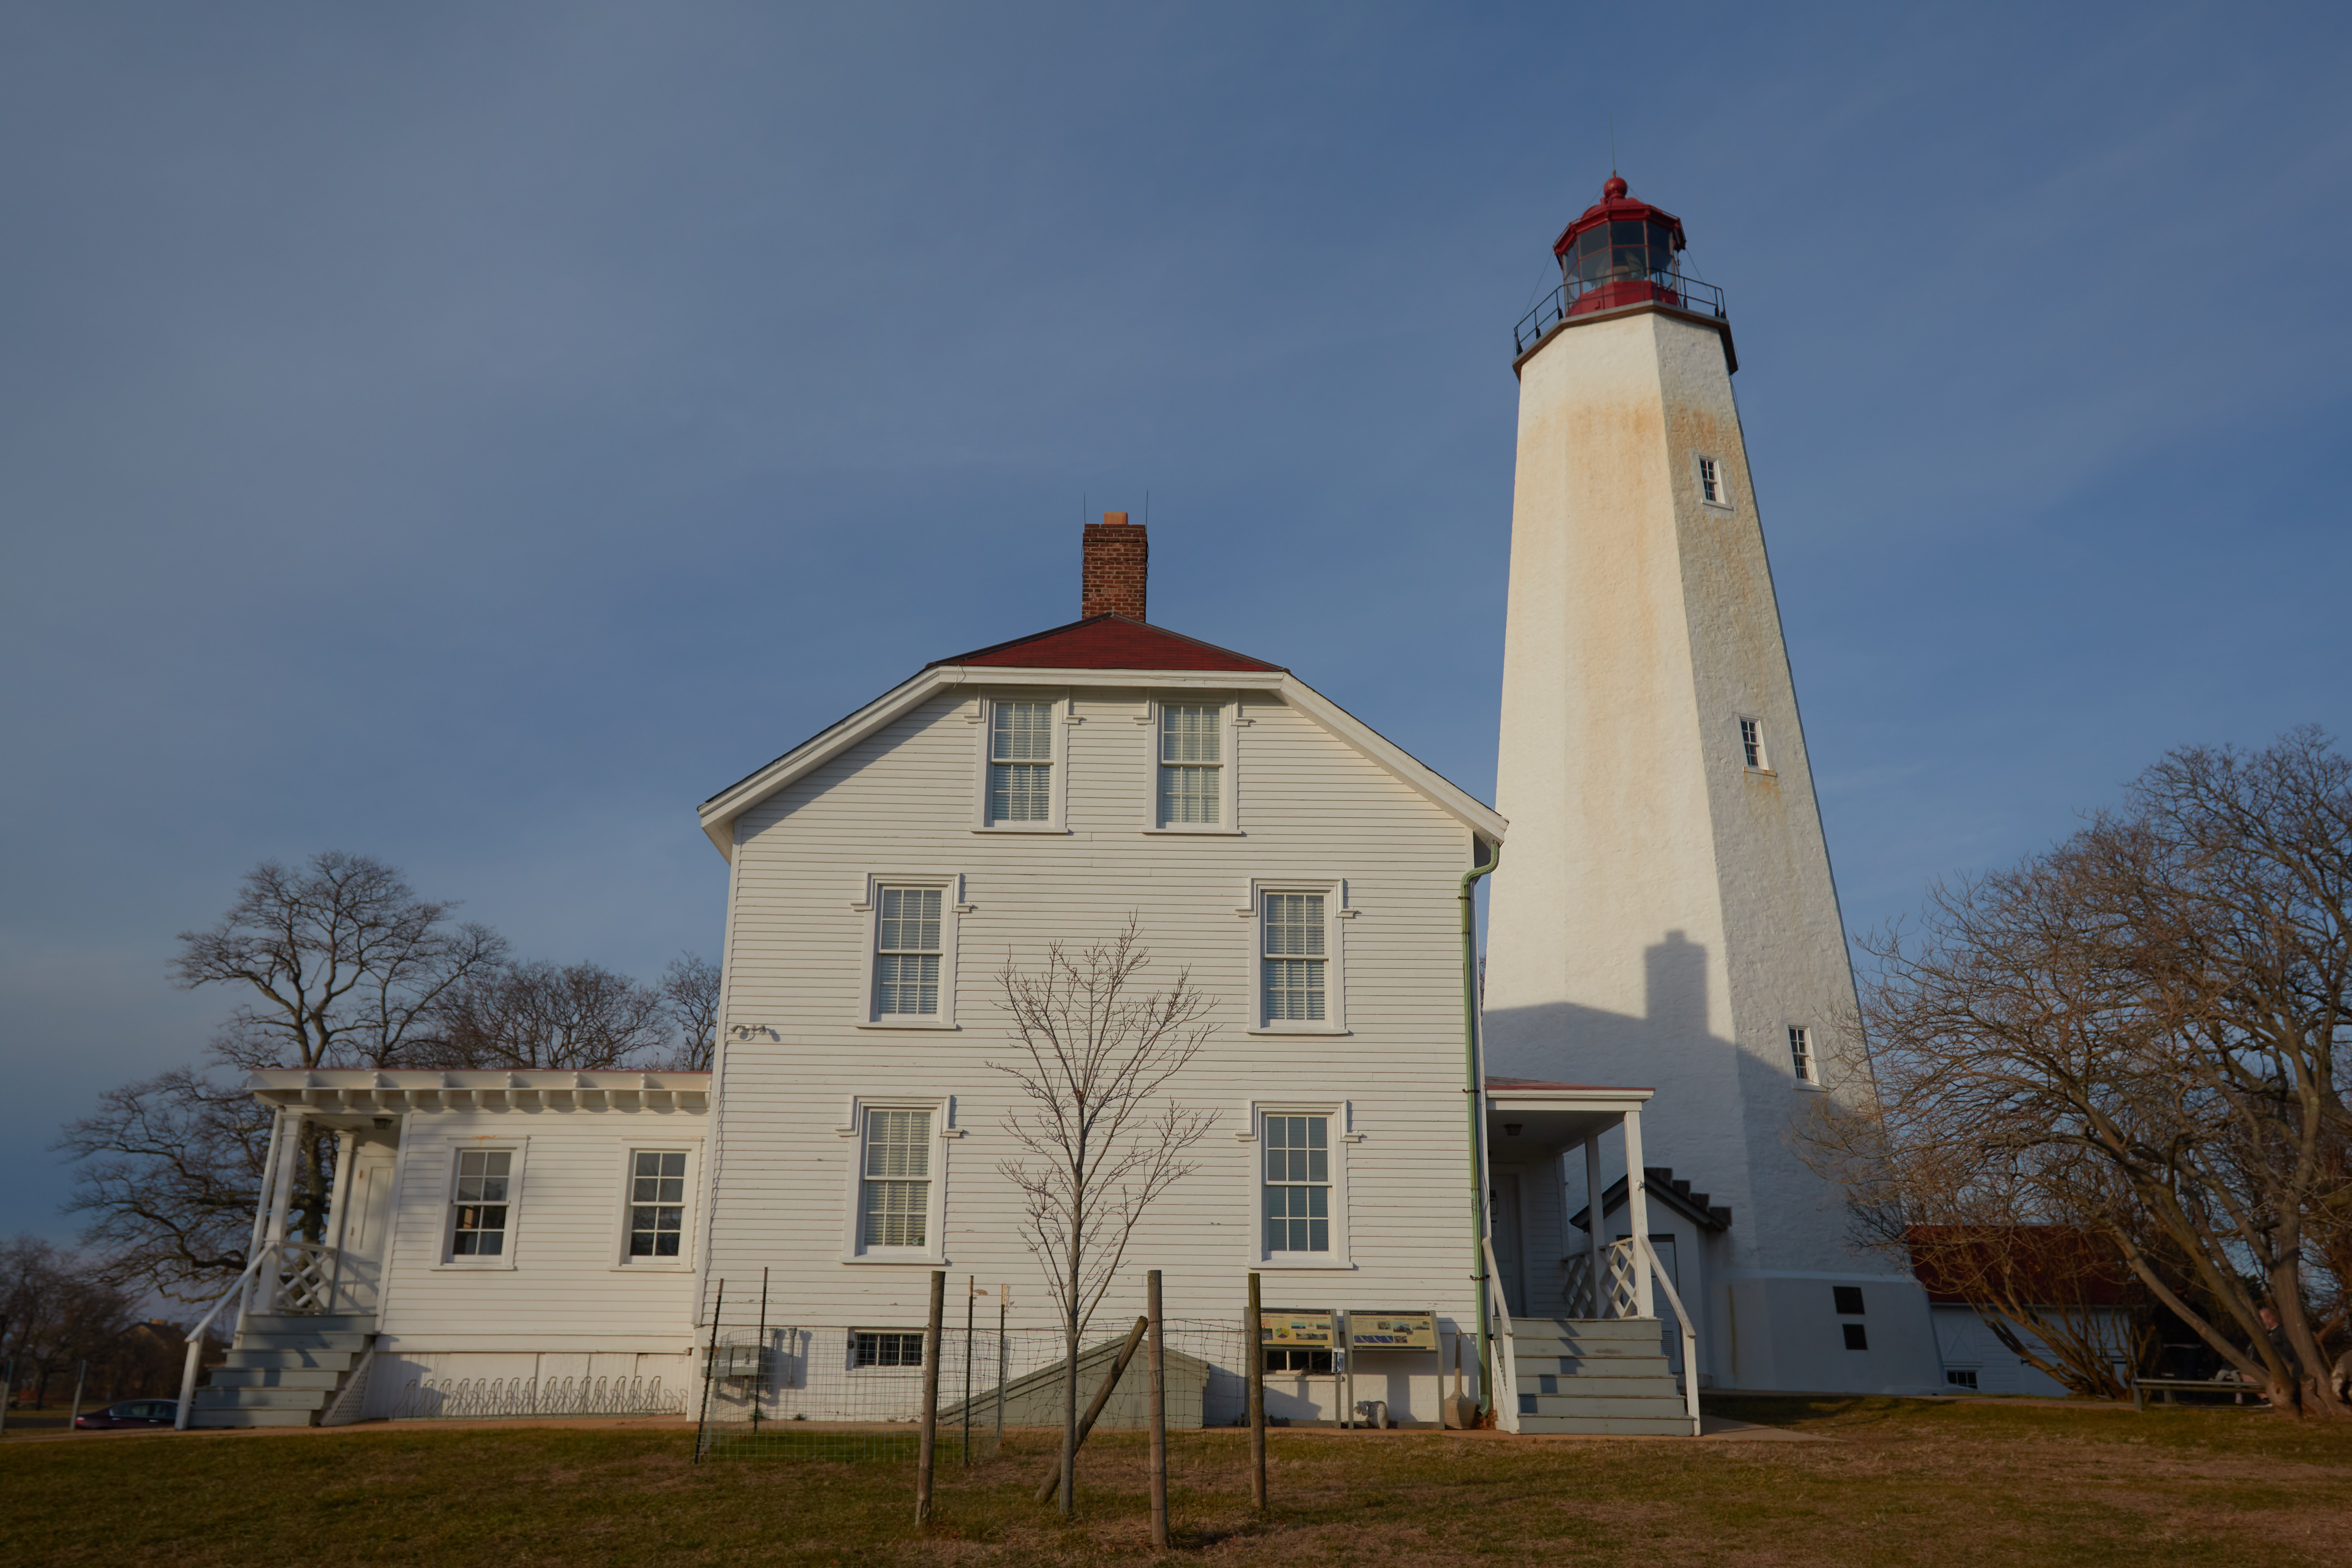 Exterior of Sandy Hook lighthouse.